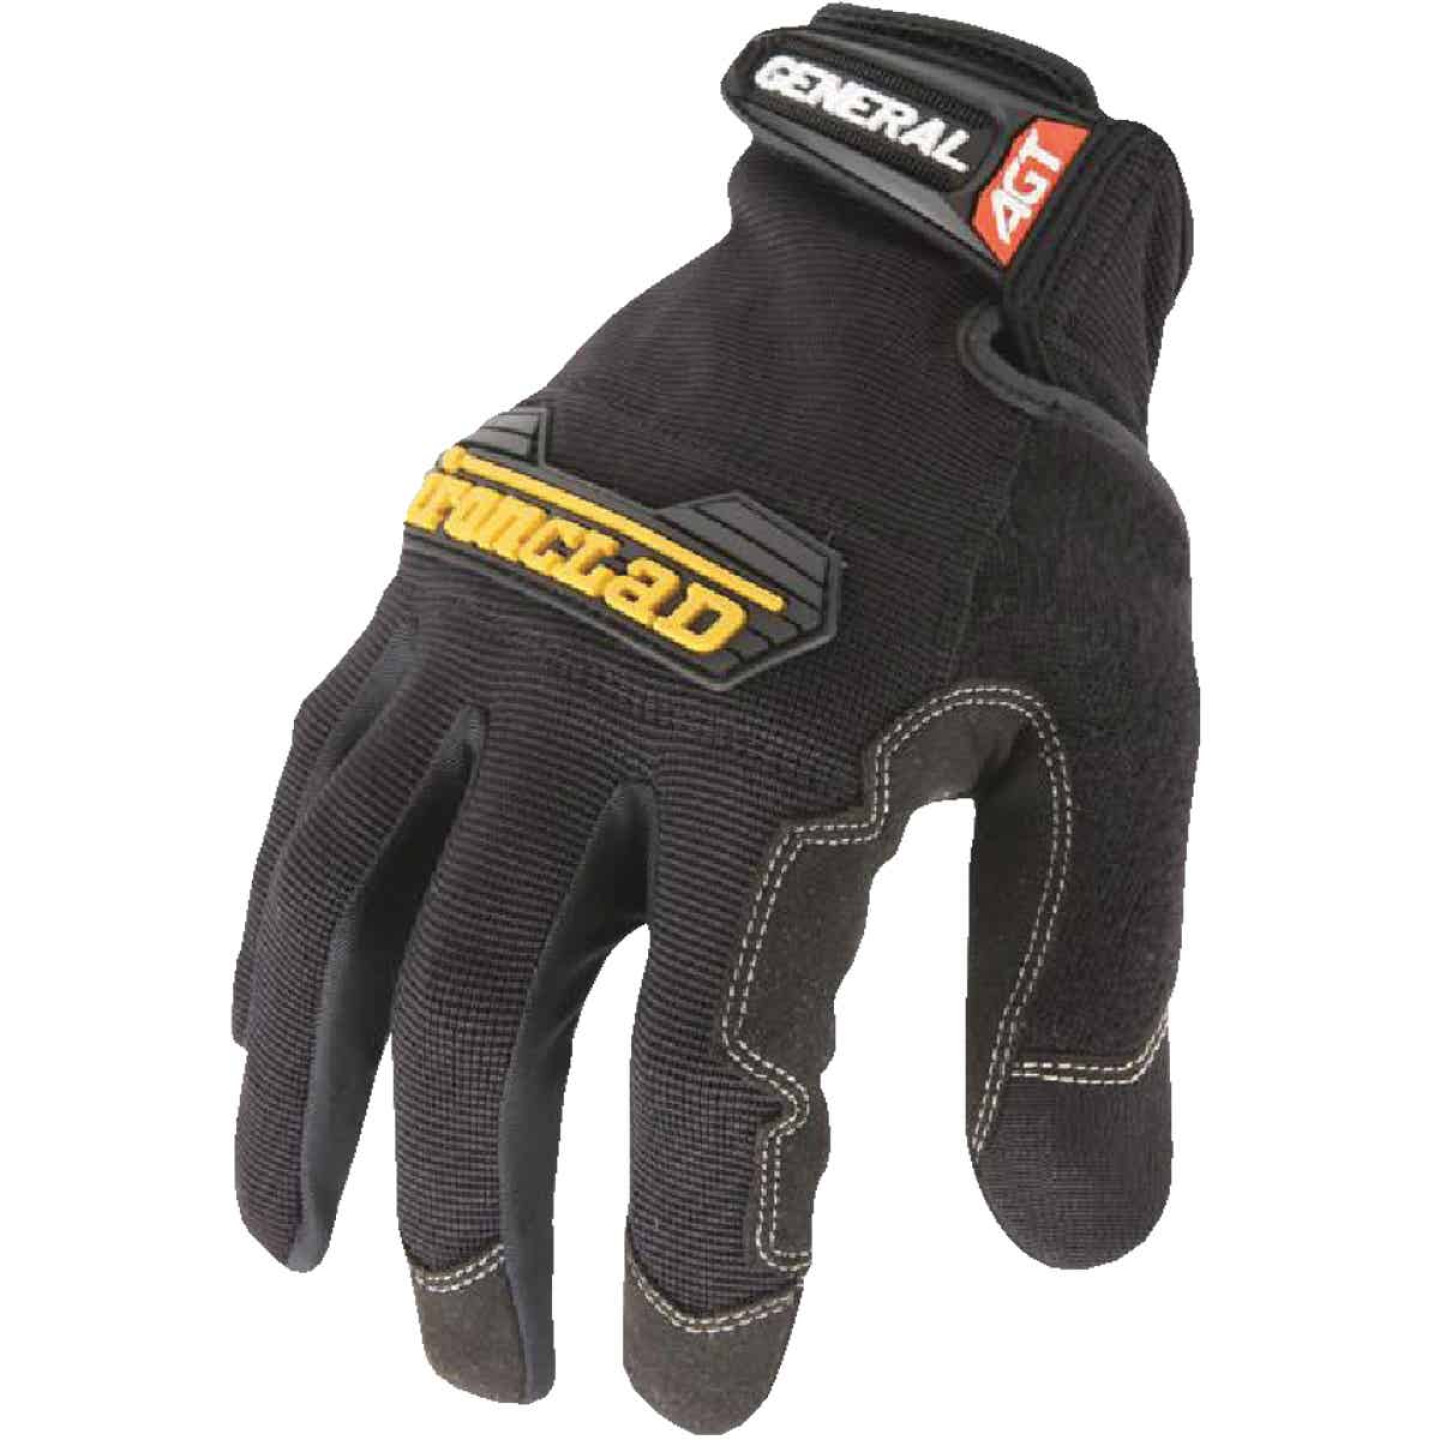 Ironclad General Utility Men's Medium Synthetic Suede High Performance Glove Image 1